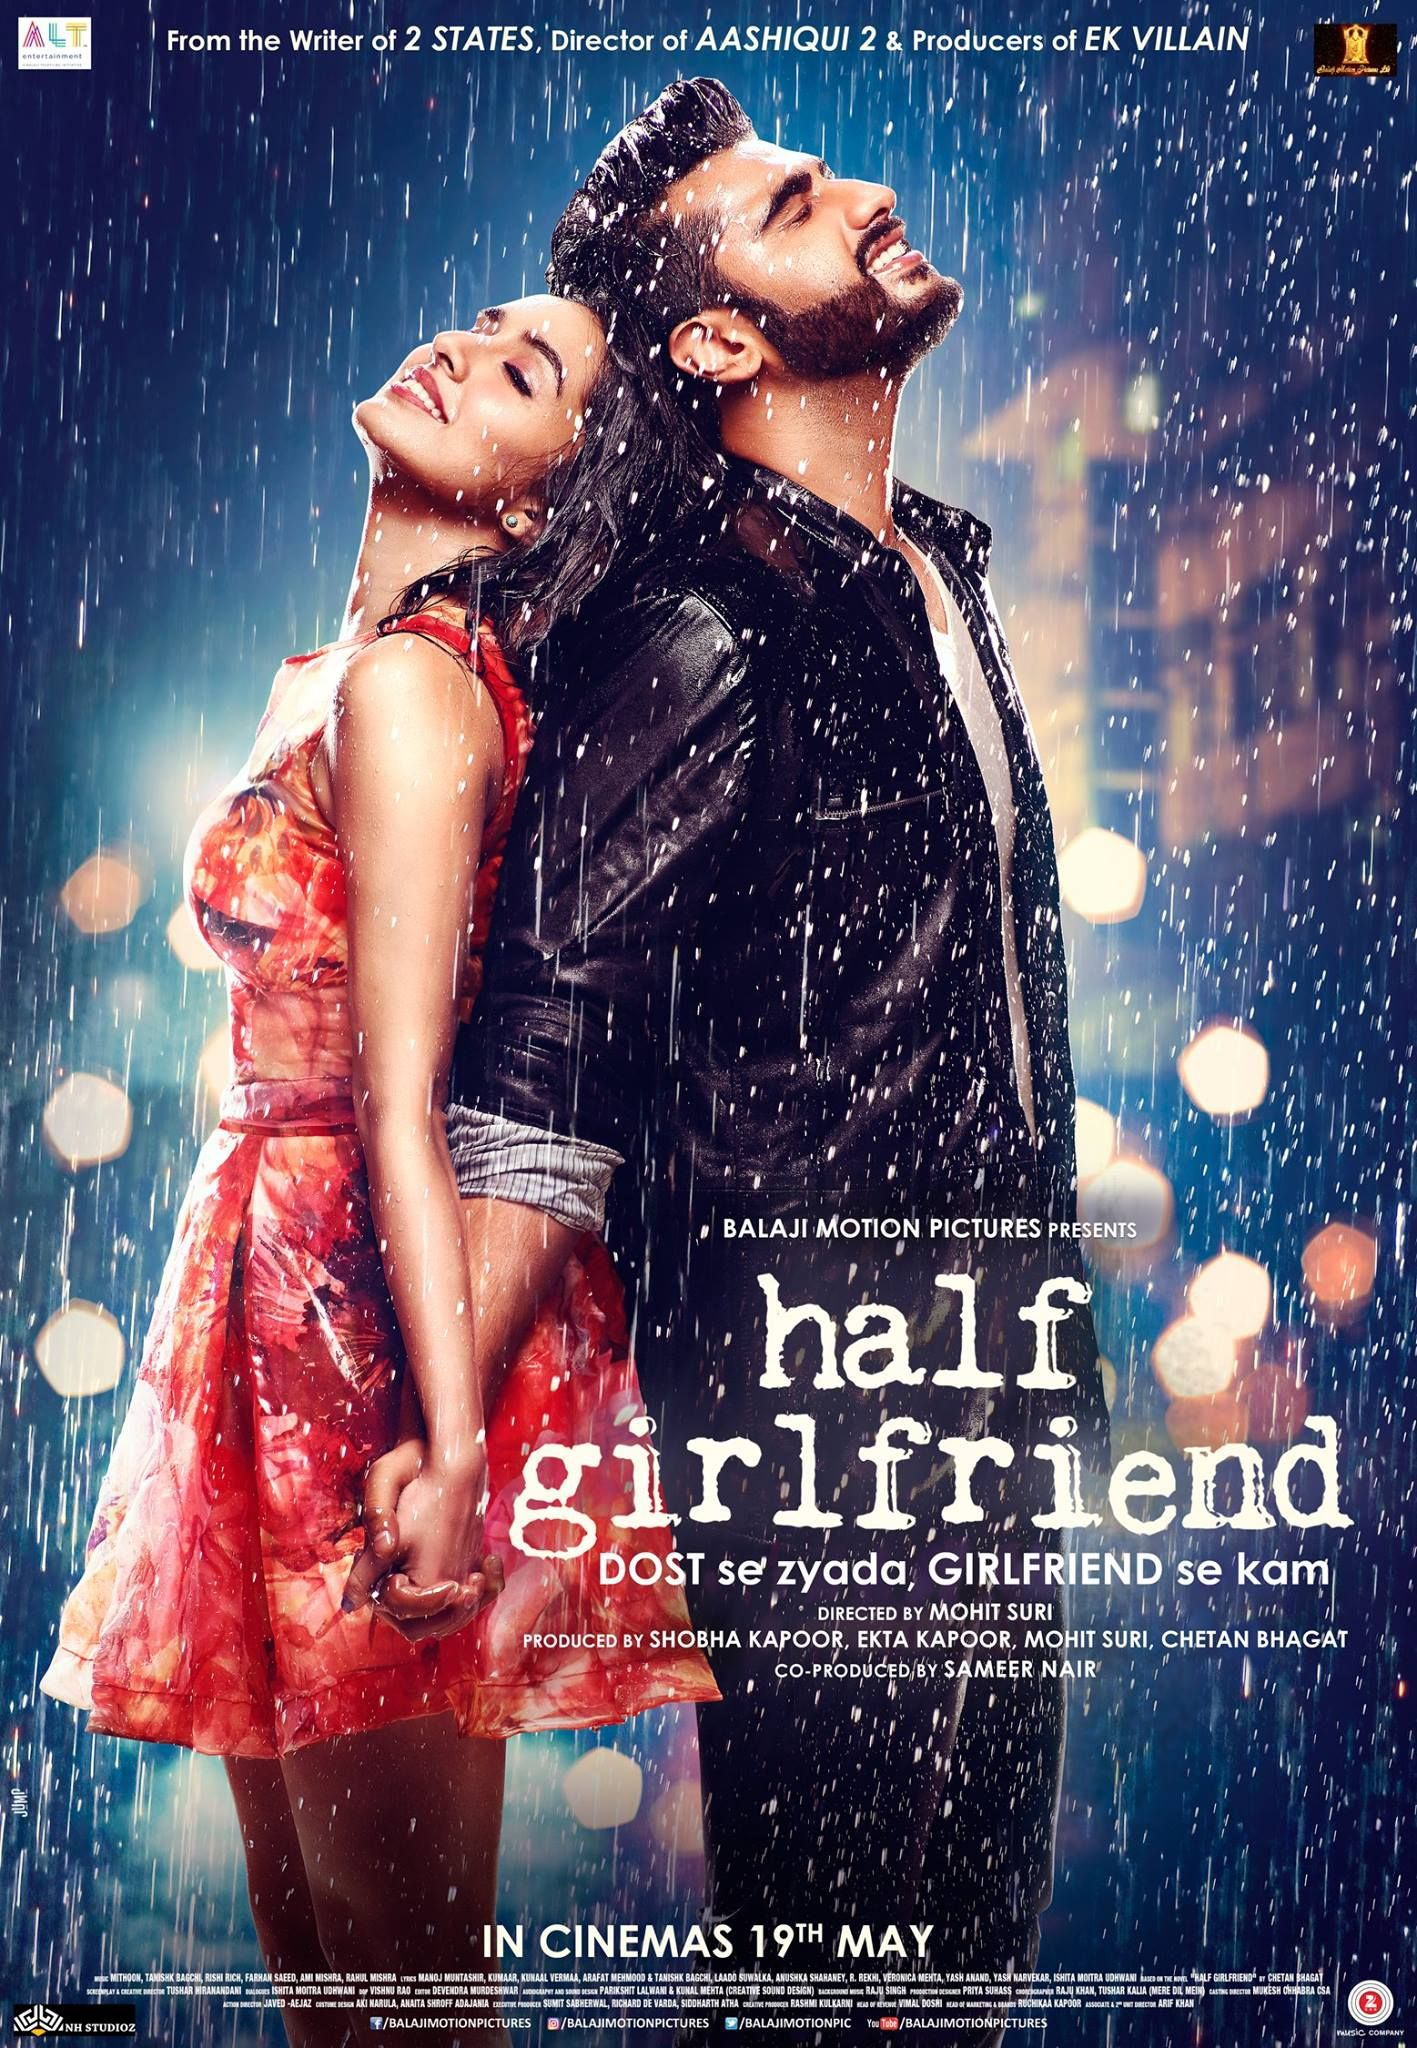 Half Girlfriend Chetanbhagat Book Was So So For Chetanbhagat Standards Will Bollywood Compensate For The Shortcomings Of Th Half Girlfriend Movie Hindi Movies Online Free Half Girlfriend Full Movie